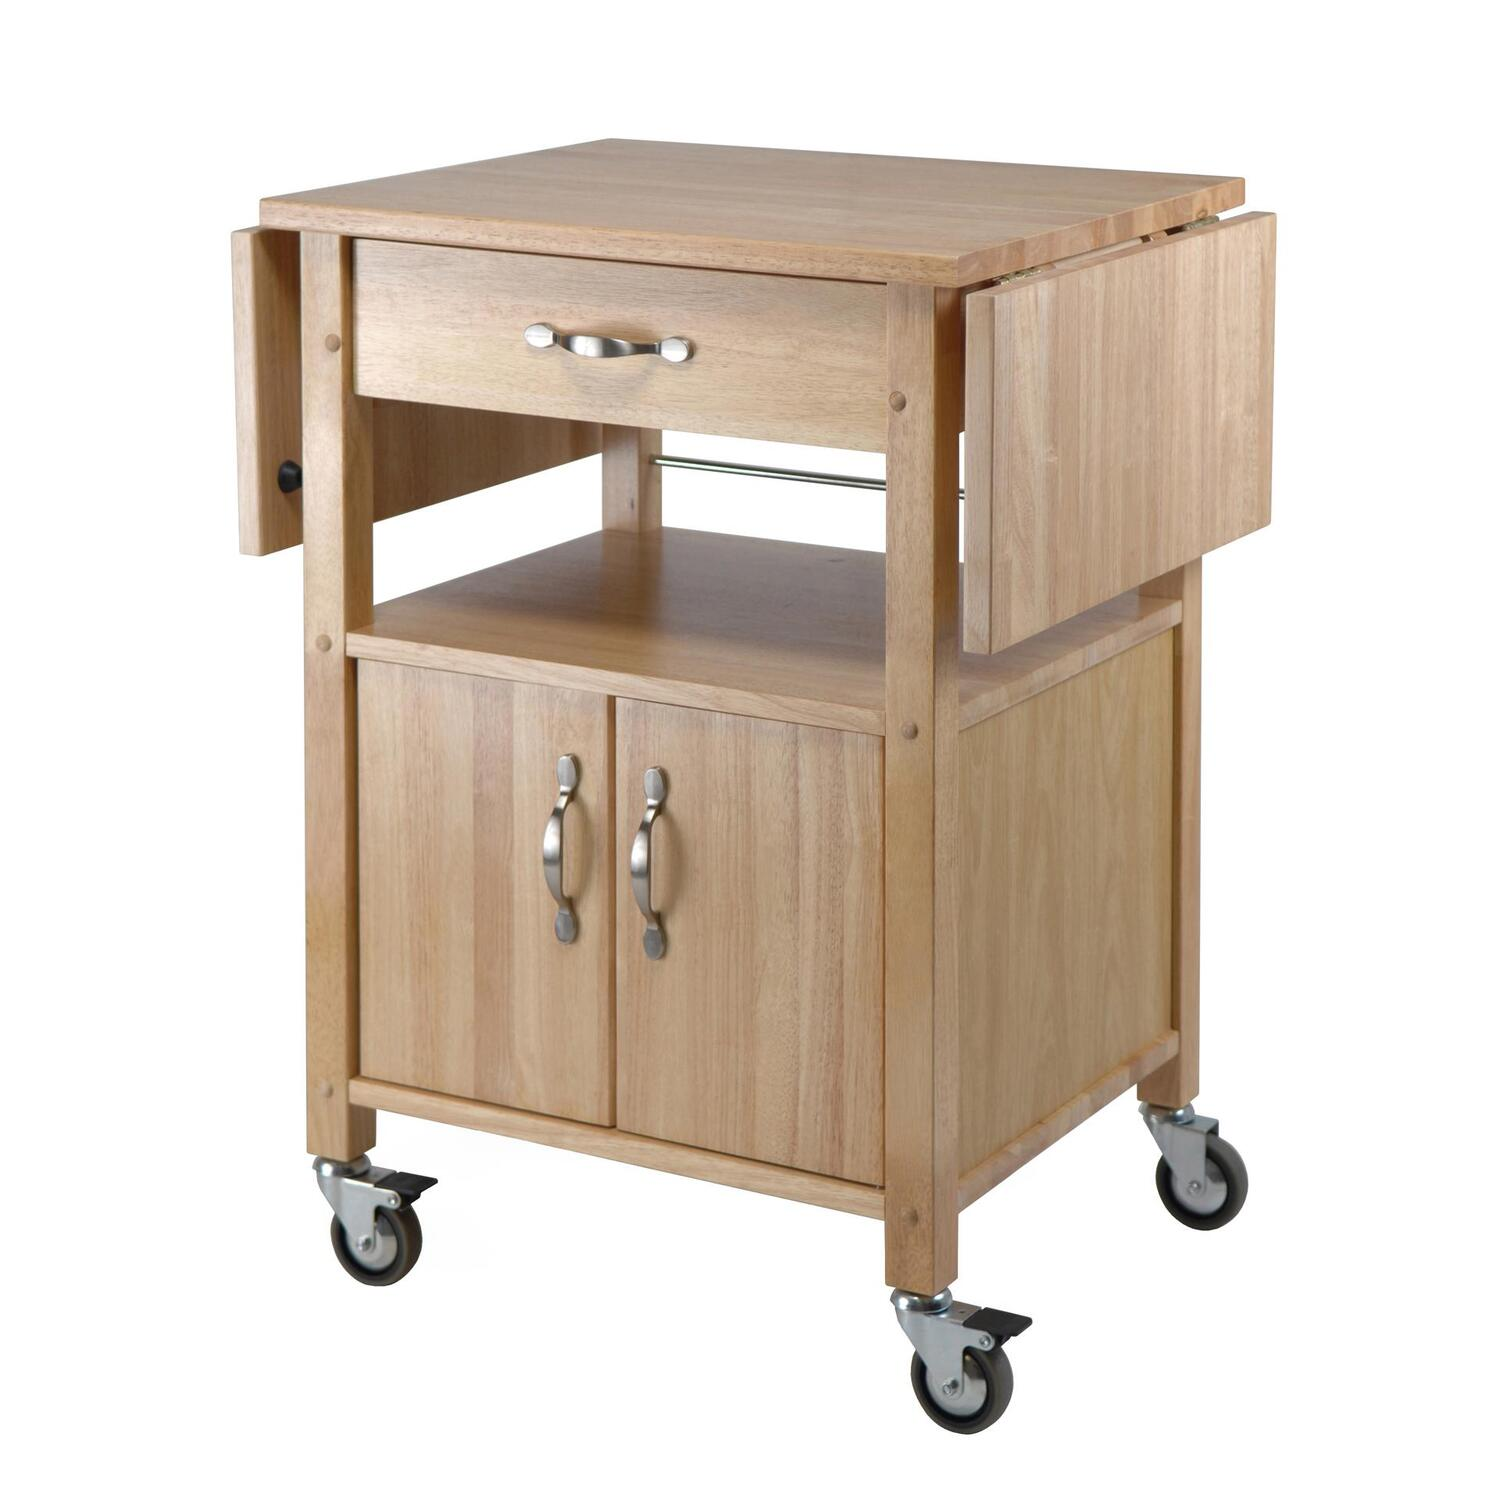 Winsome Kitchen Cart Double Drop Leaf Cabinet with